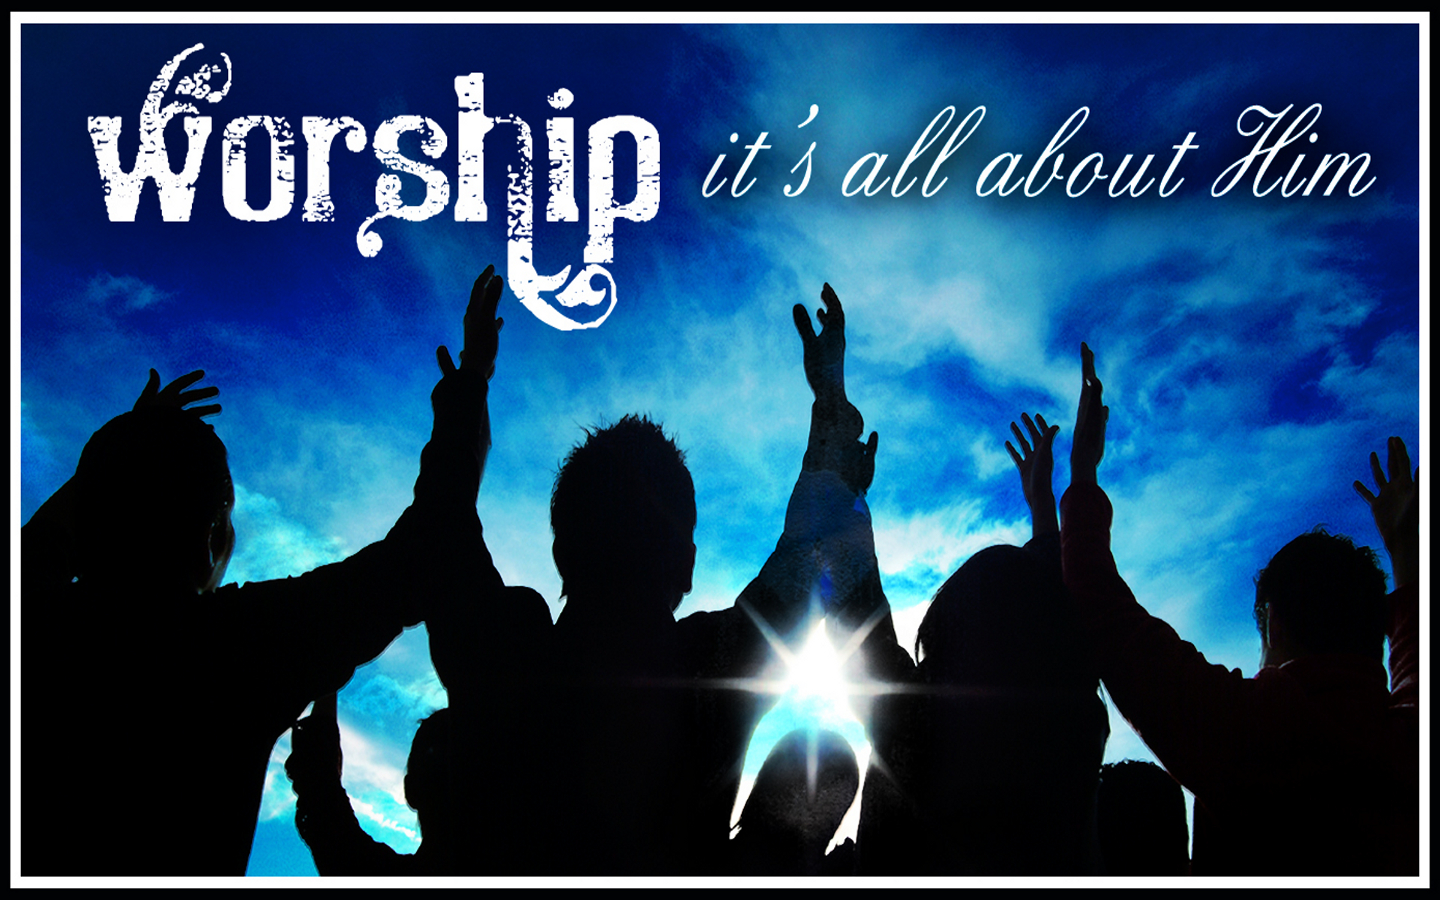 ... Worship - Worshipping God – Worship the Lord - worship-all-about-him